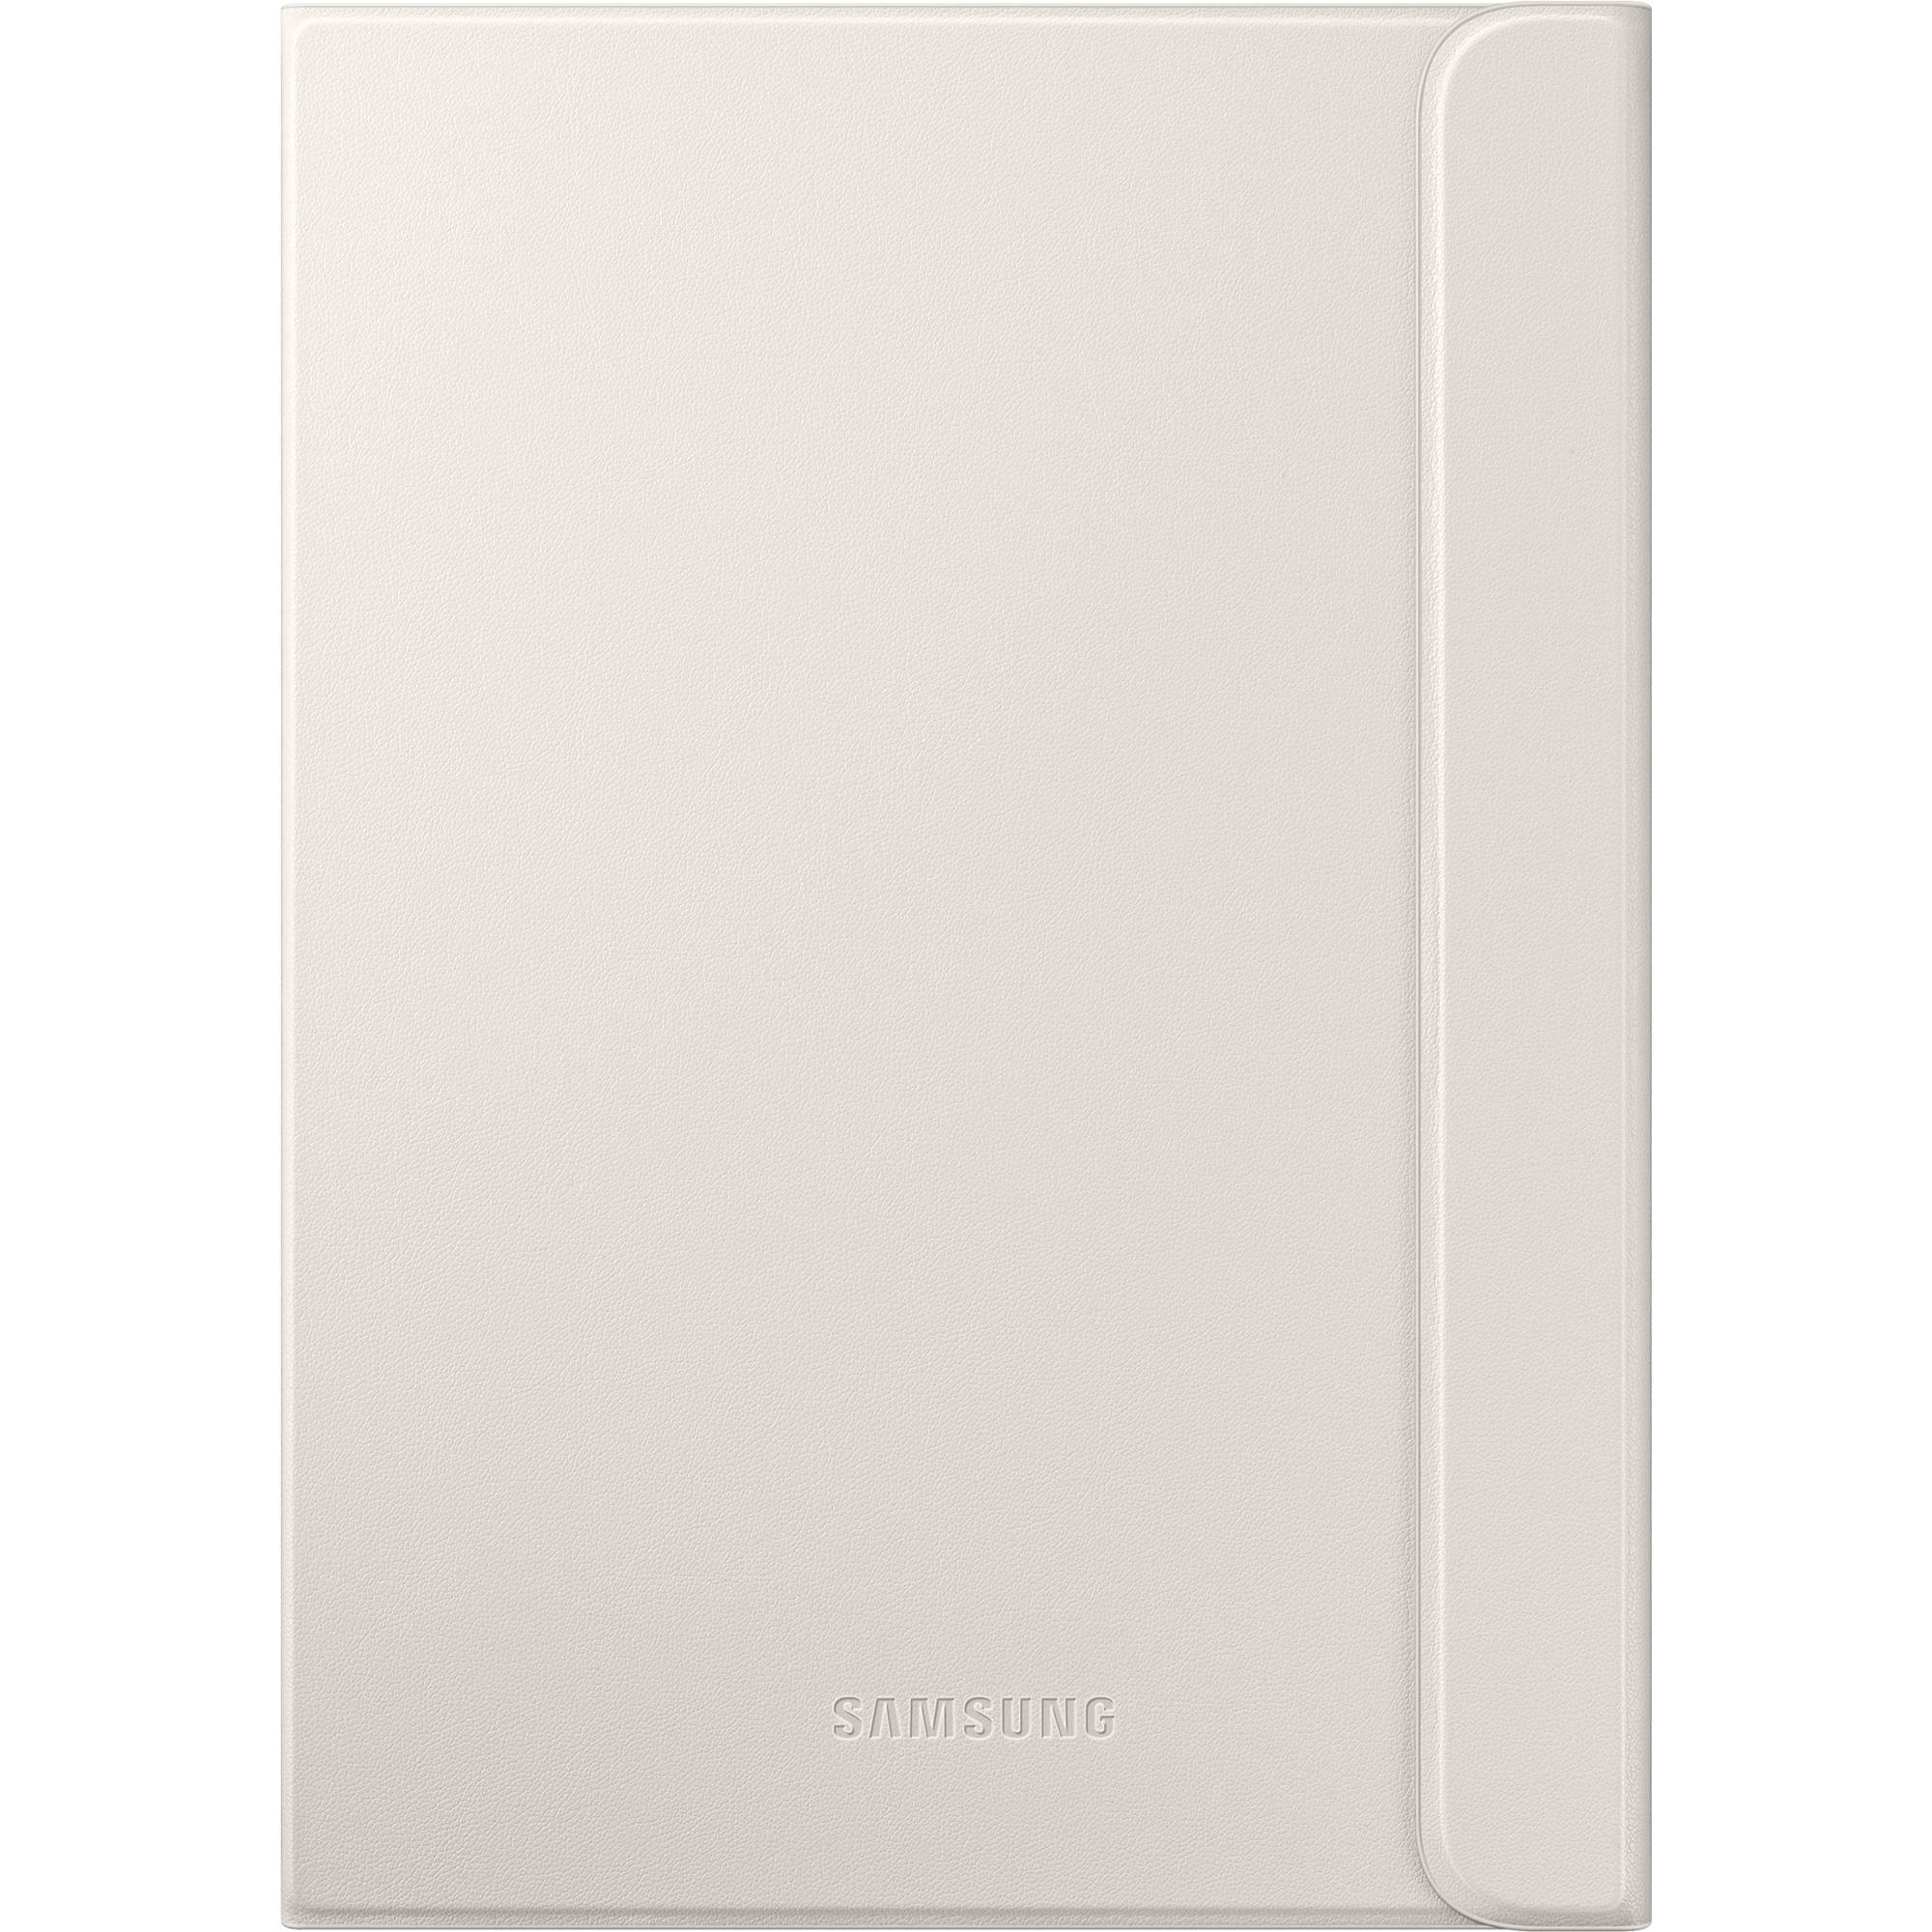 Samsung Galaxy Tab A Book Cover White ~ Samsung galaxy tab s book cover white ef